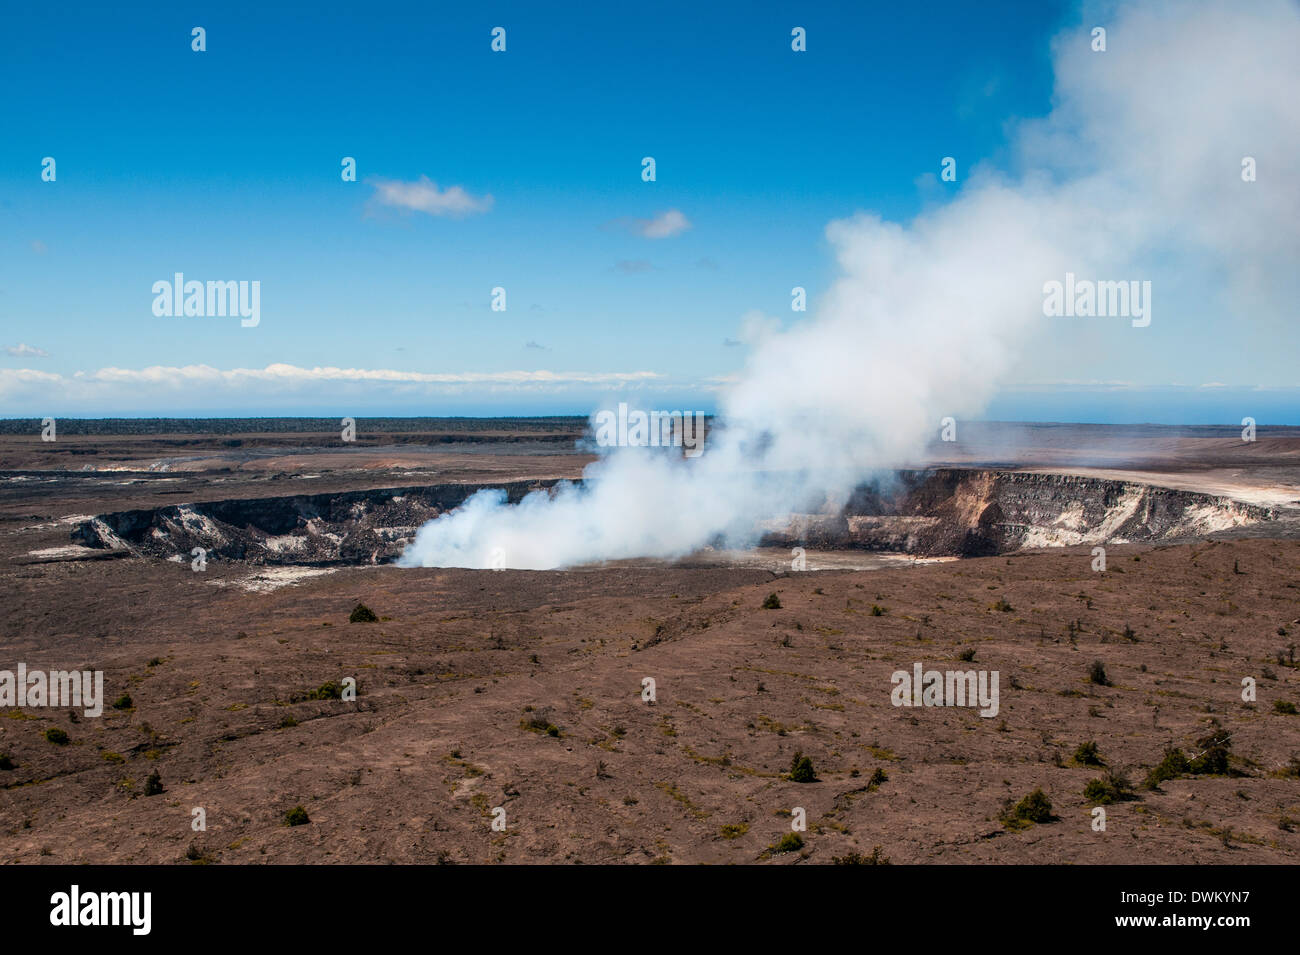 Smoking Kilauea Summit Lava Lake in the Hawaii Volcanoes National Park, UNESCO World Heritage Site, Big Island, Hawaii, Pacific - Stock Image